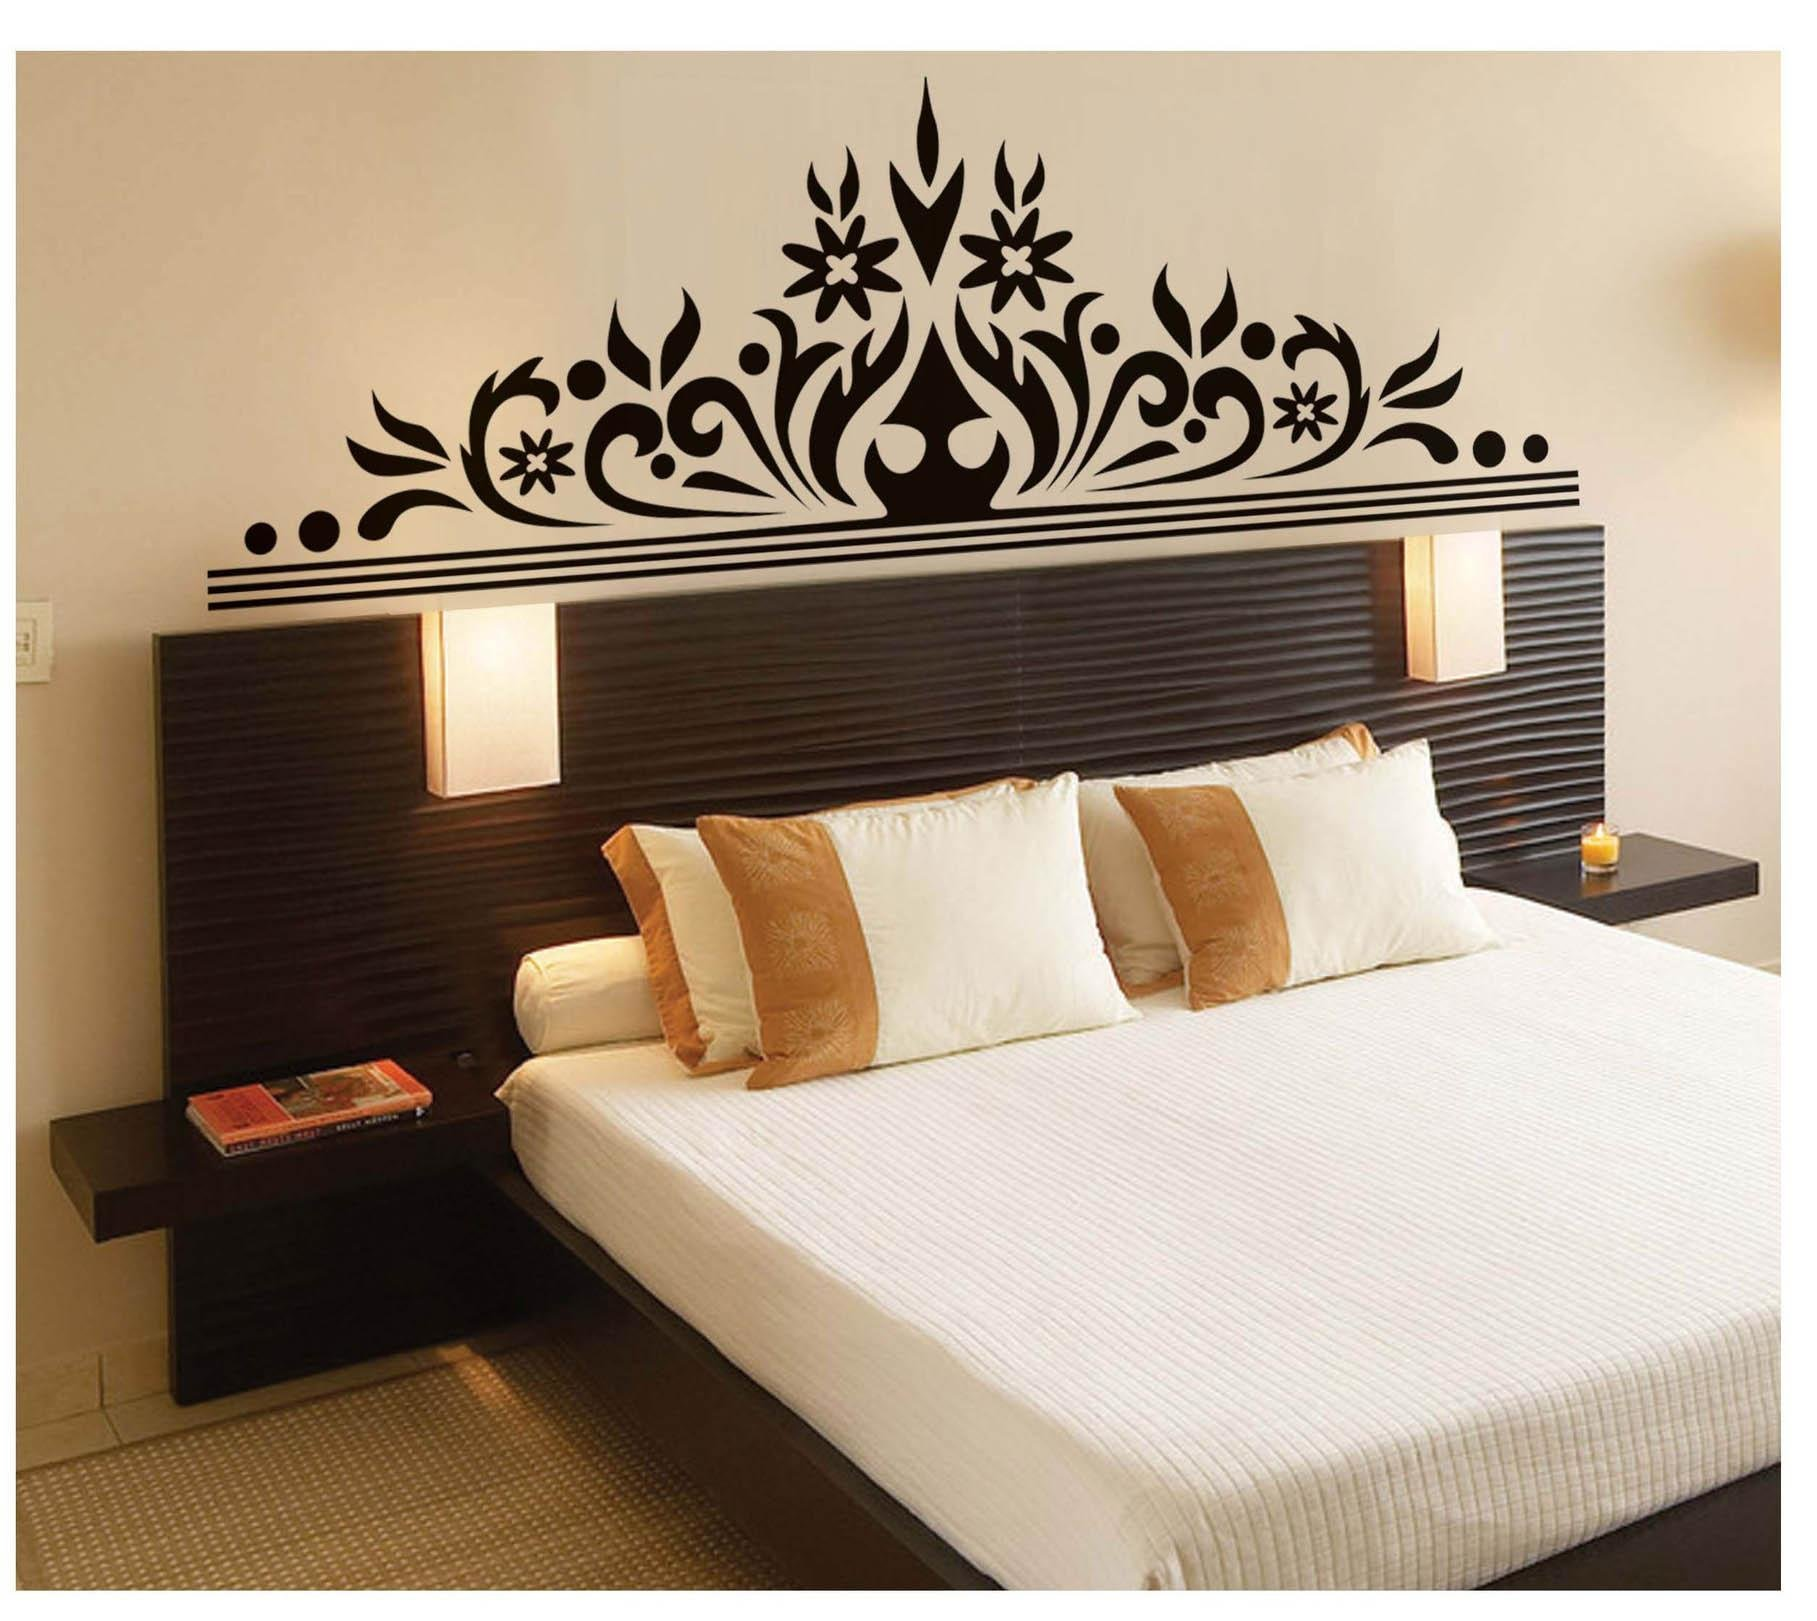 Best Bedroom Wall Art Decal Sticker Headboard Wall Decoration With Pictures